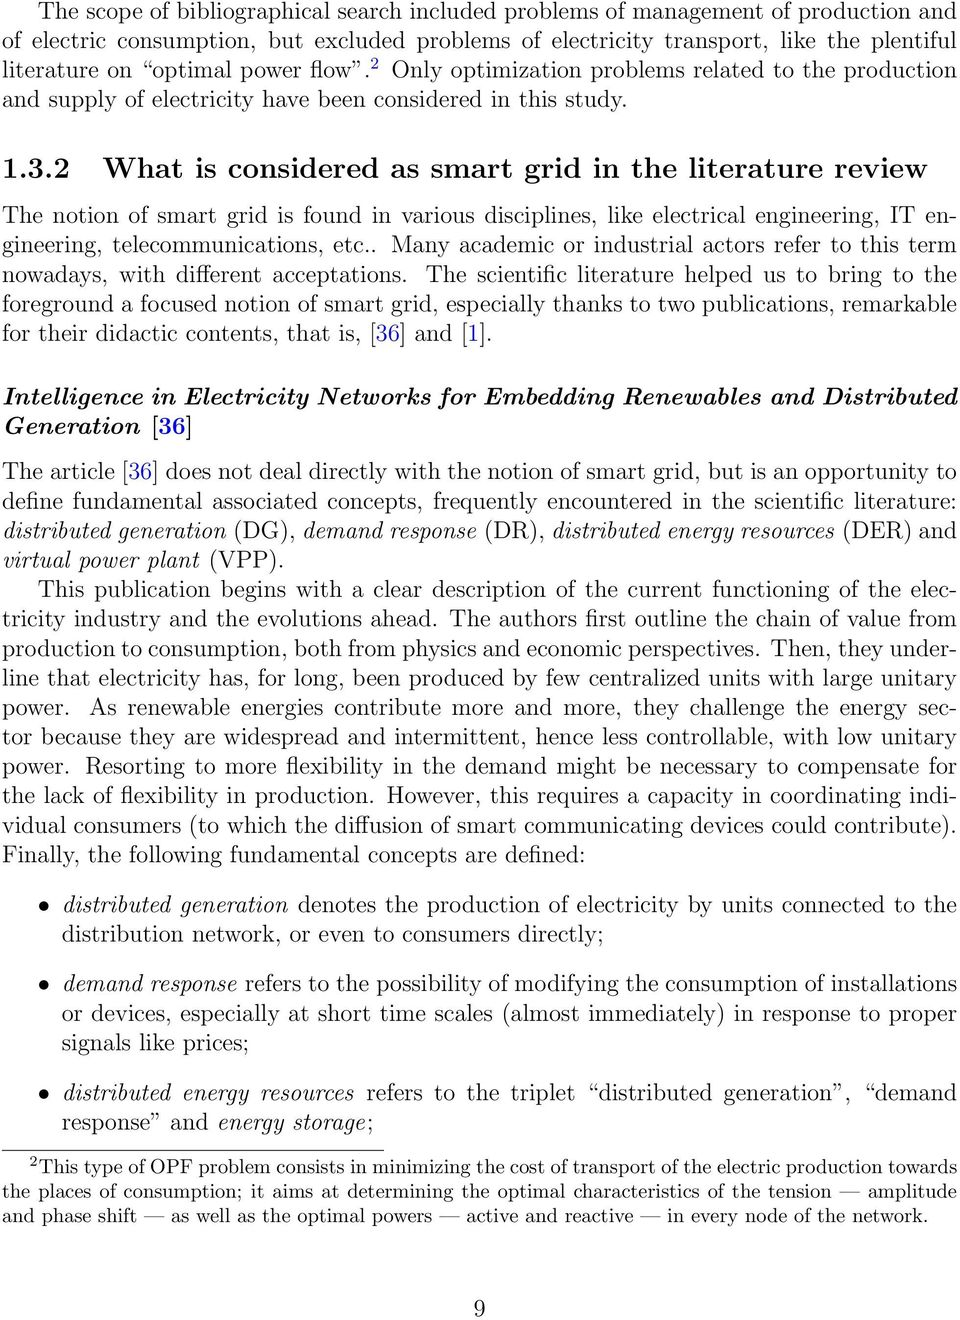 2 What is considered as smart grid in the literature review The notion of smart grid is found in various disciplines, like electrical engineering, IT engineering, telecommunications, etc.